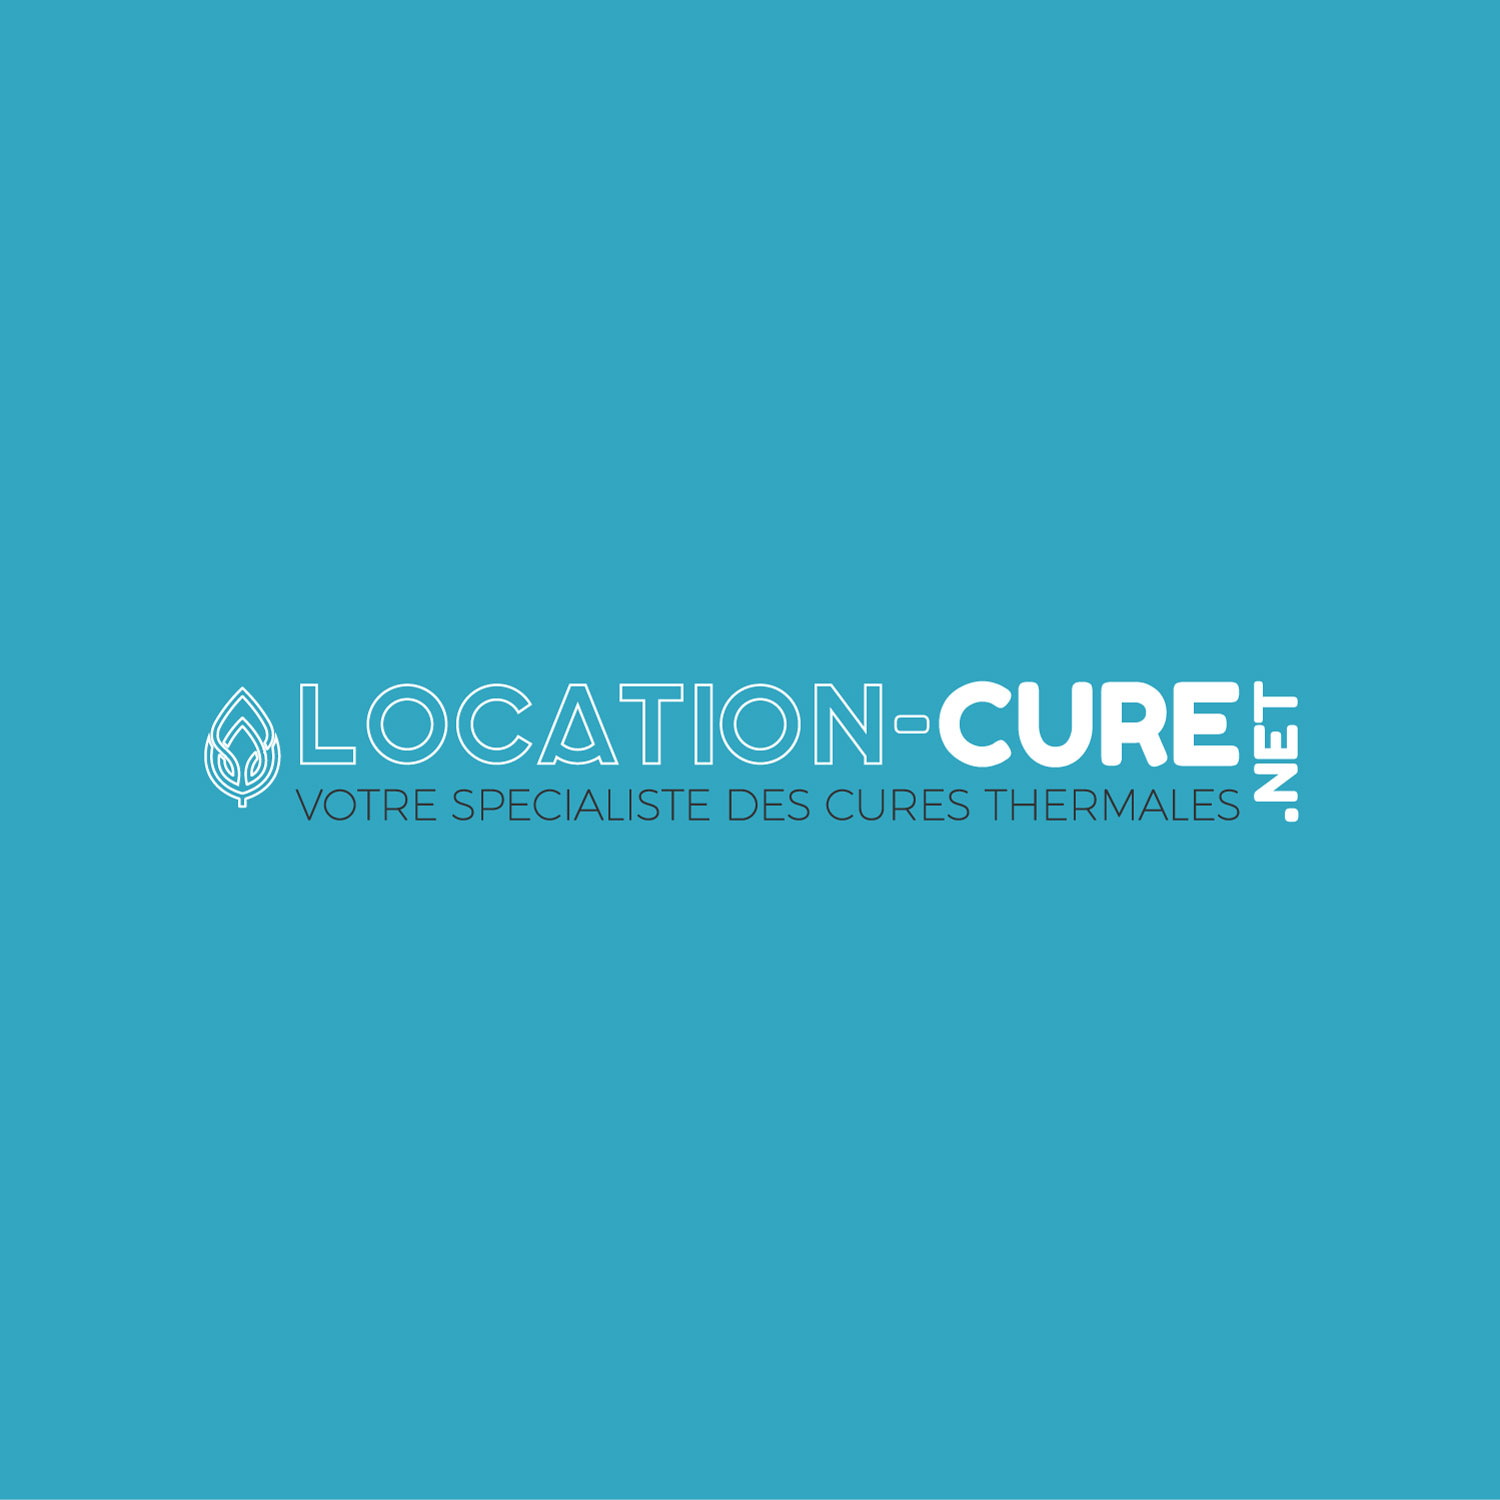 LOGO-CURE-THERMALE-LWAS